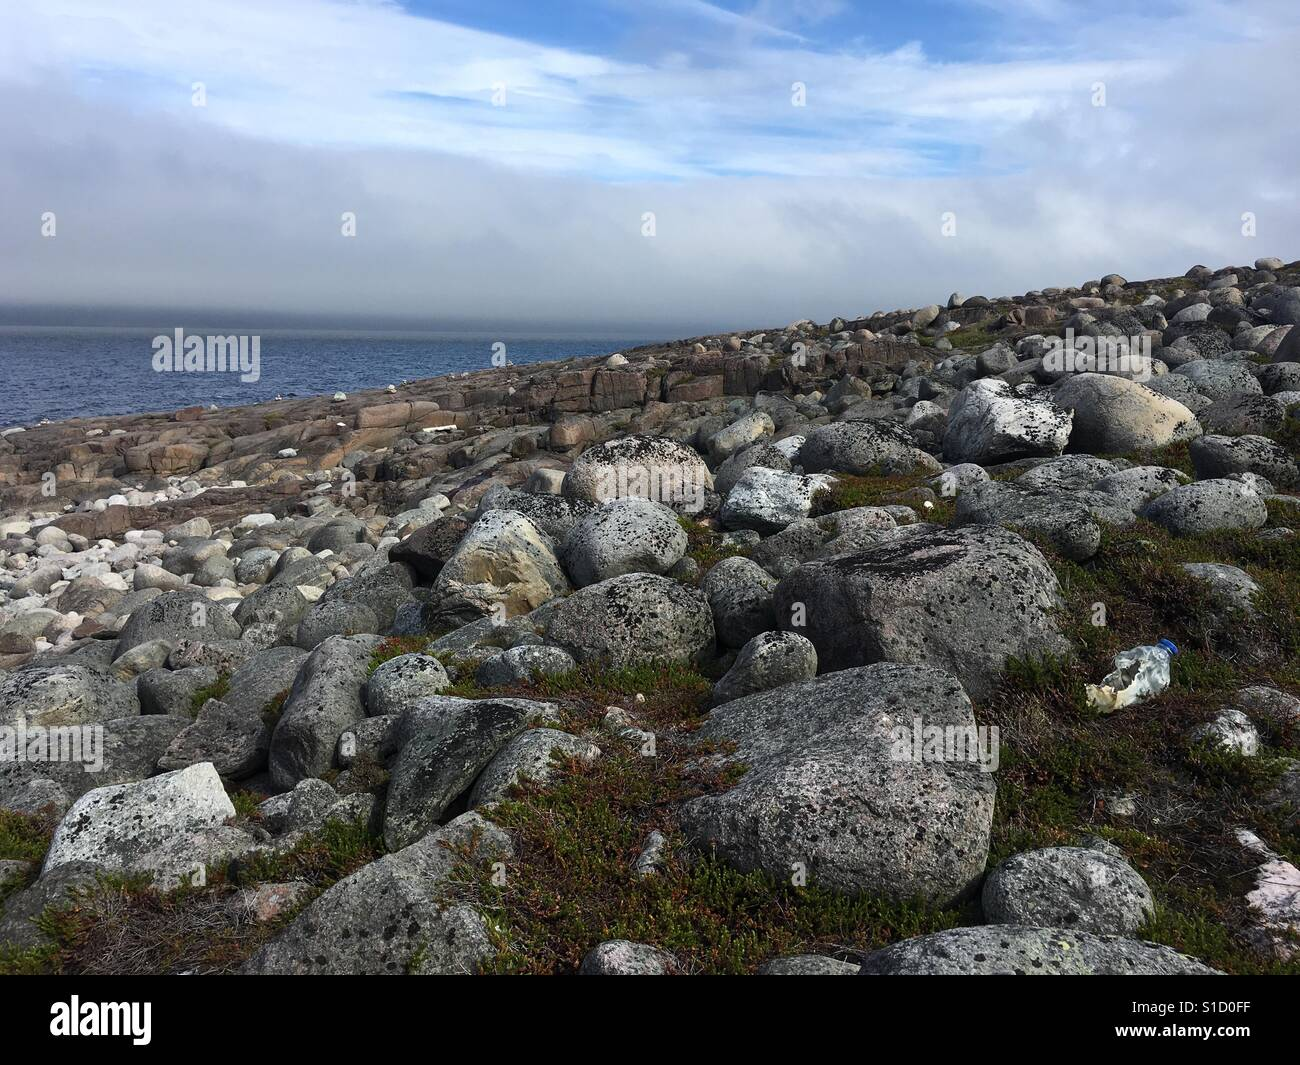 Seashore Stockbild